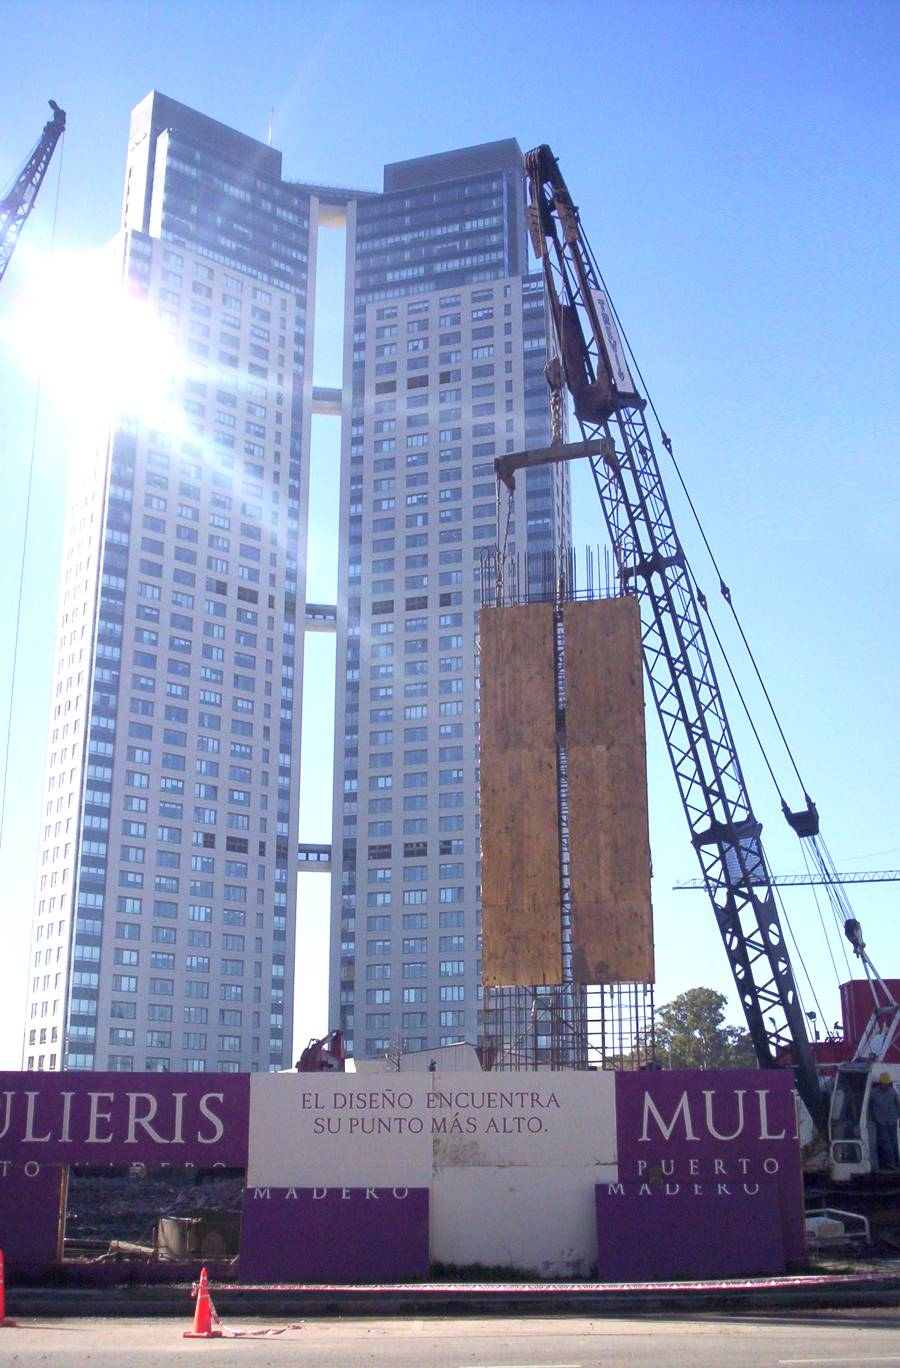 Pilotes Trevi celebrates the Mulieris Towers project in Argentina